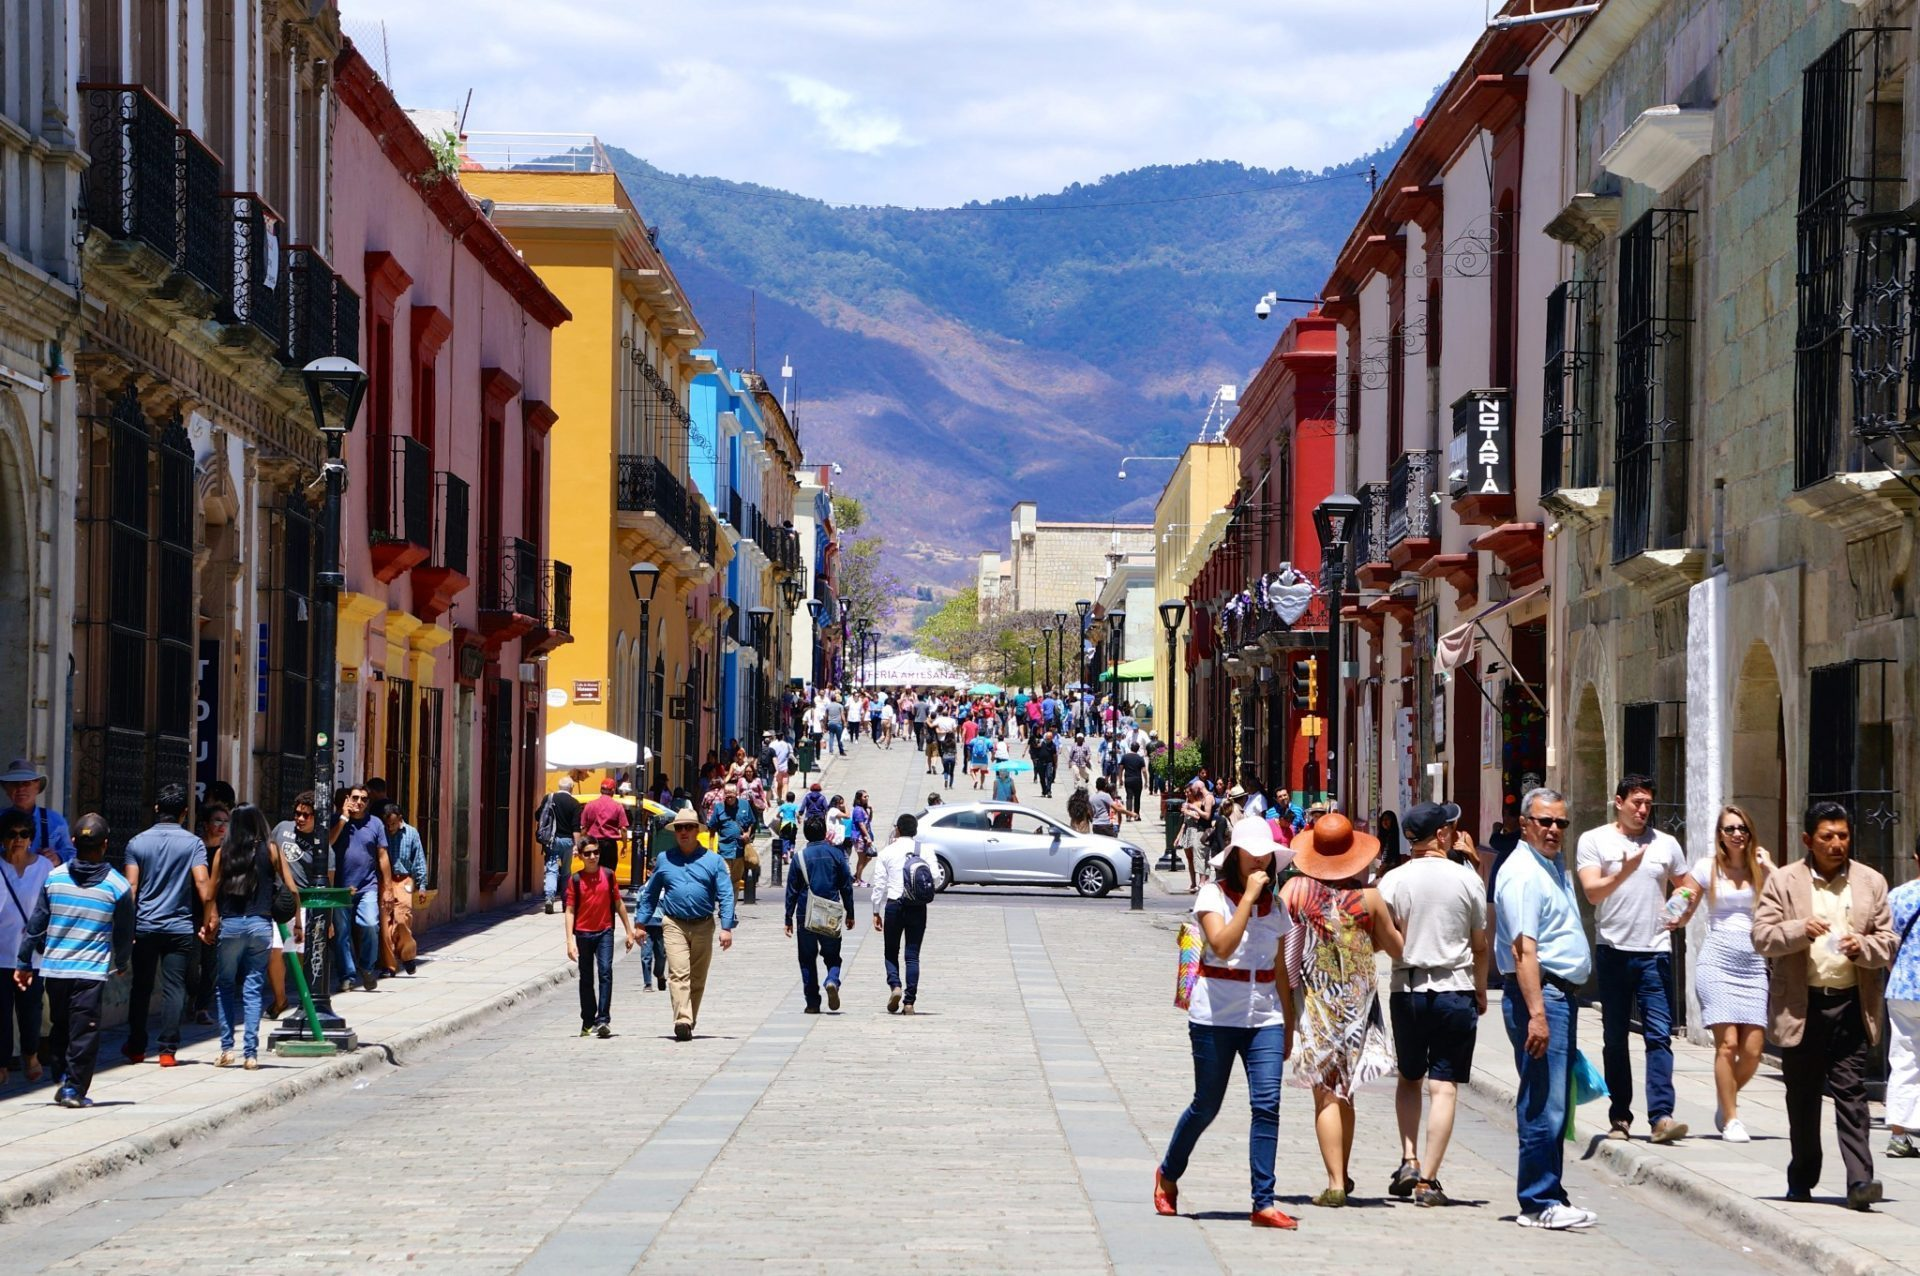 15 Best Things To Do In Oaxaca Mexcio: Travel Guide & Tips